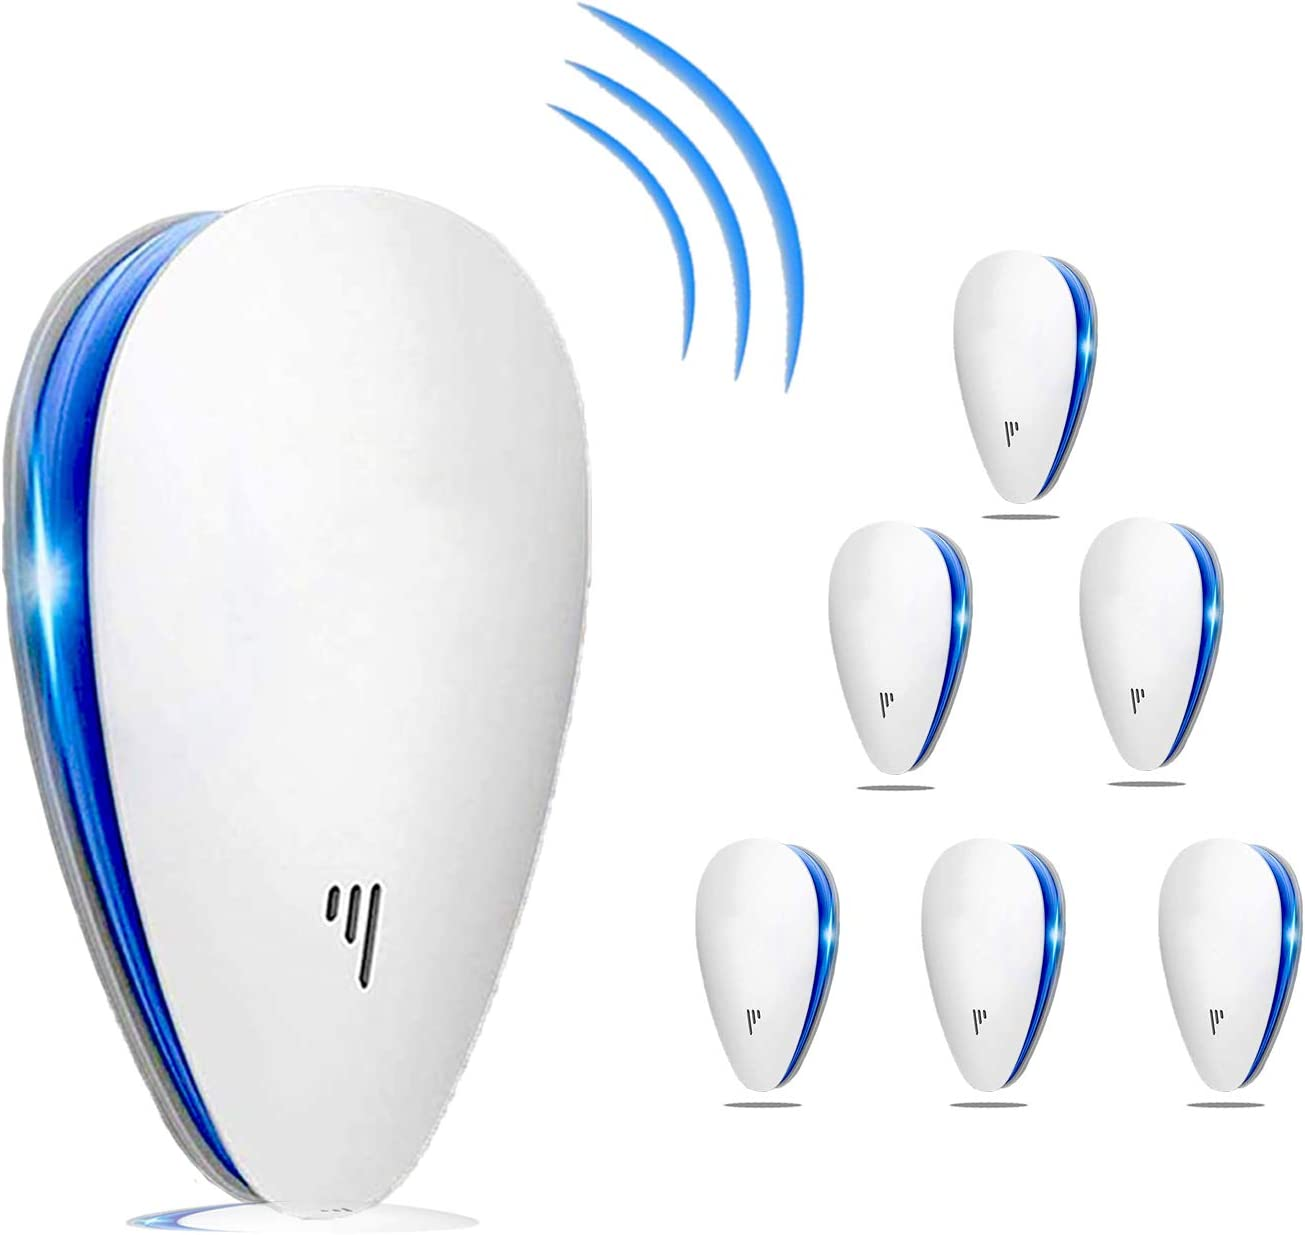 Ultrasonic Pest Repeller(6 Pack), 2020 Pest Control Ultrasonic Repellent, Electronic Repellant - Bug Repellent for Ant, Mosquito, Mice, Spider, Roach, Rat, Flea, Fly: Office Products